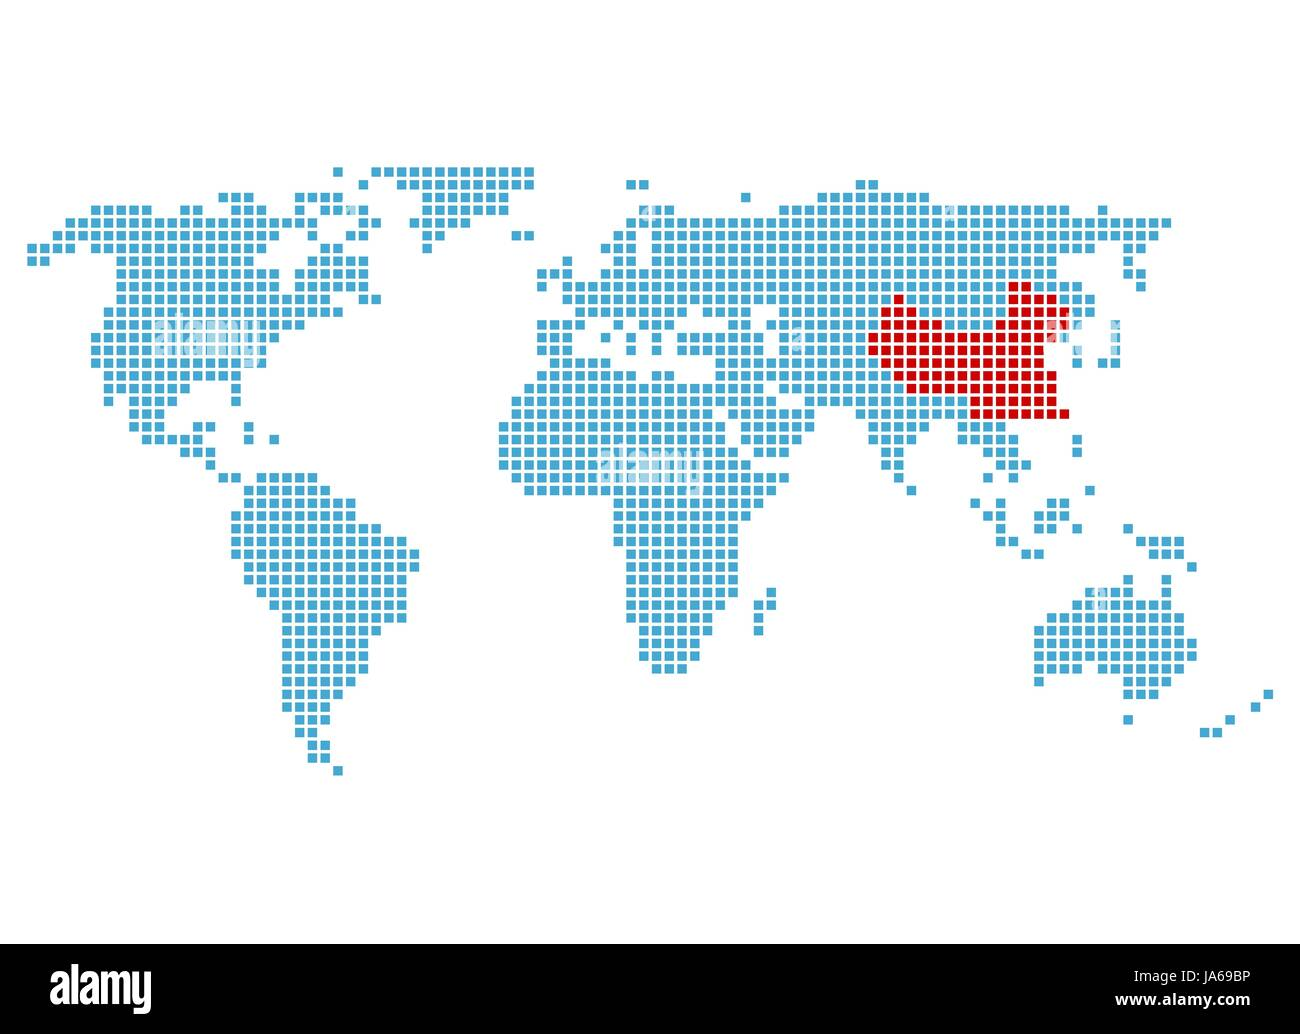 Asia Marking Chinese Situation Beijing Atlas Map Of The World